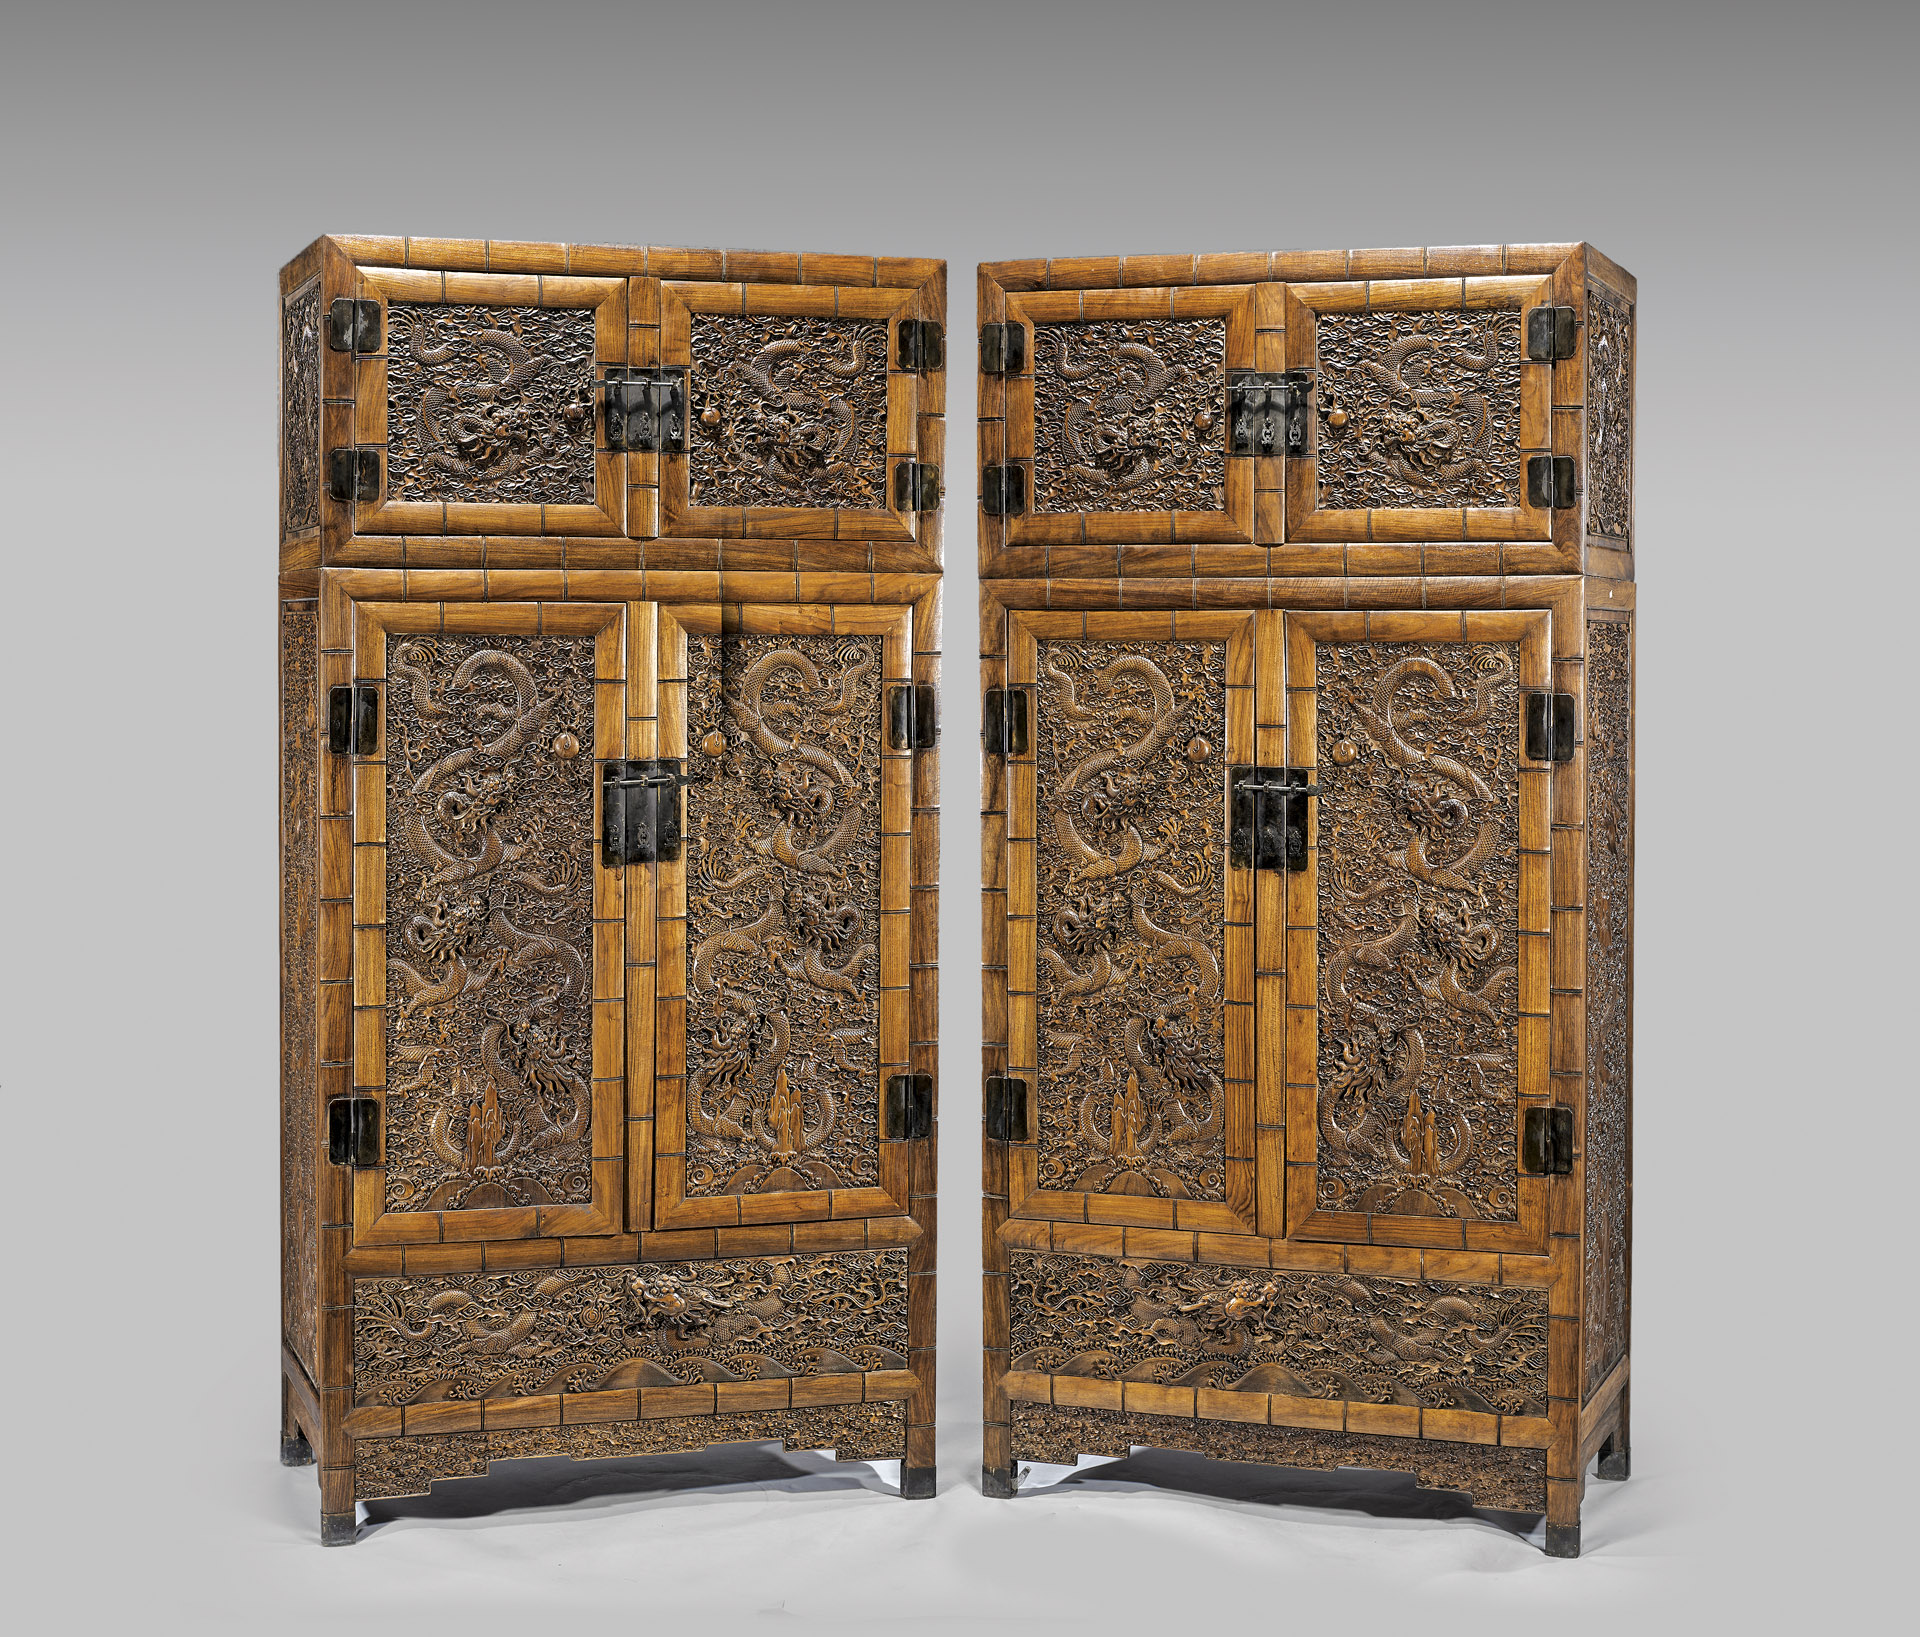 Merveilleux Although Not Antique, This Pair Of Large, Chinese Ming Style Huanghuali  Stacked Wood